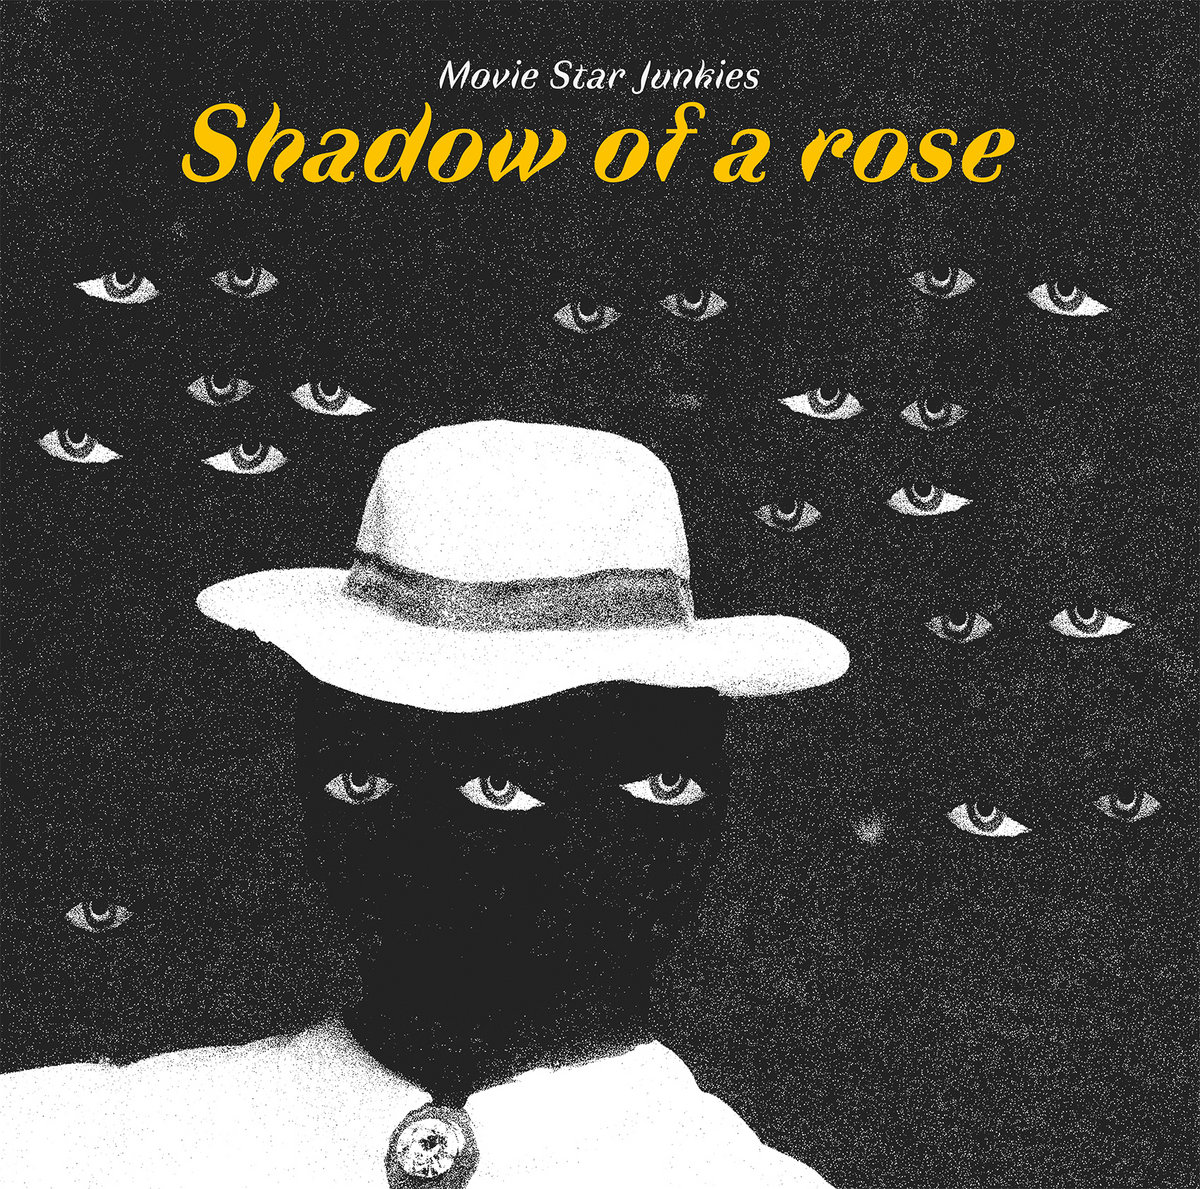 Movie Star Junkies – Shadow Of A Rose